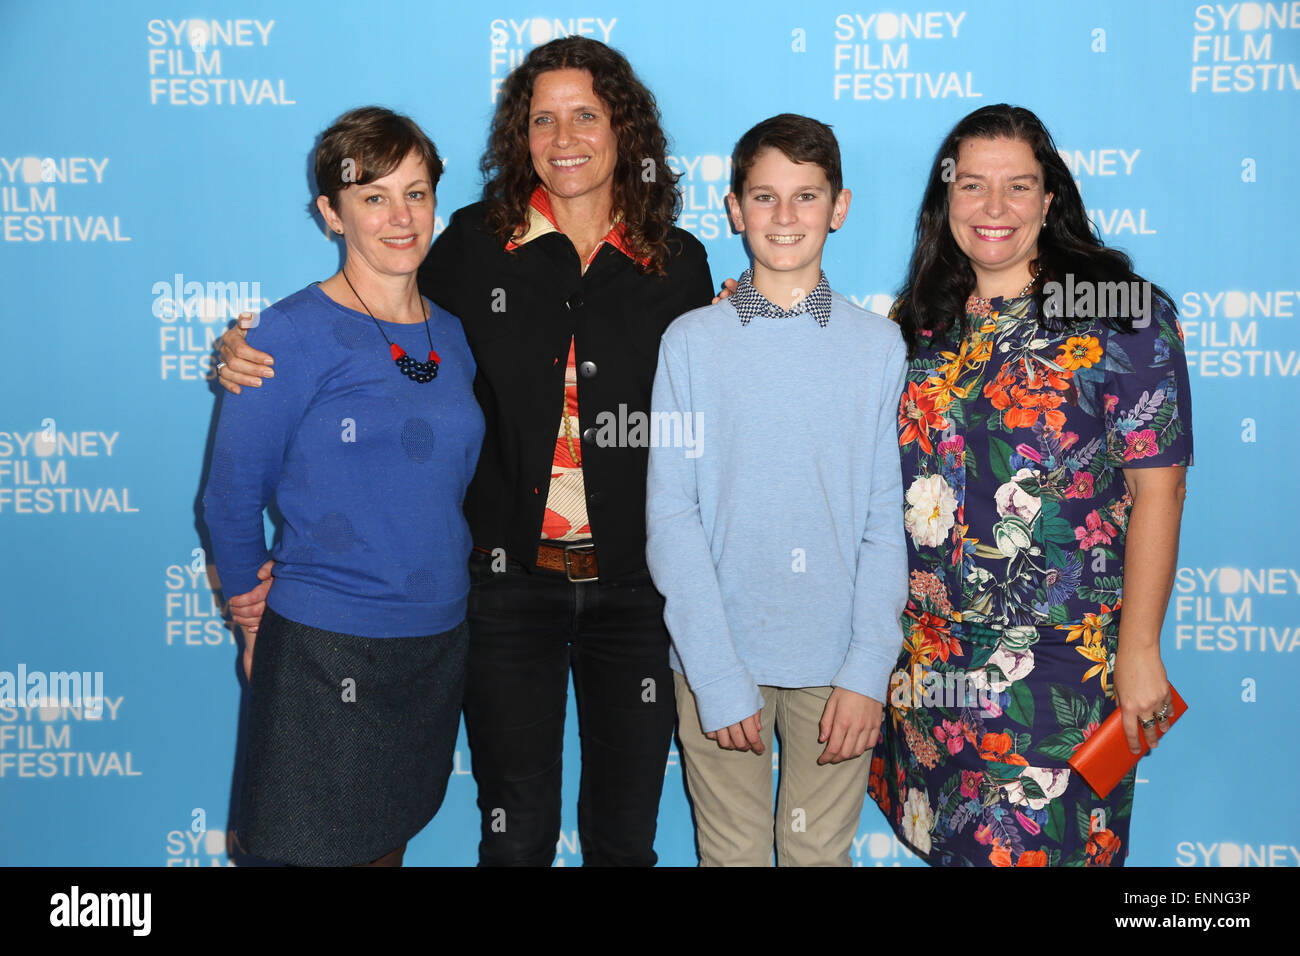 Sydney, Australia. 6 May 2015. Launch of the 62nd Sydney Film Festival, pictured: 'Wide Open Sky' cast and - Stock Image